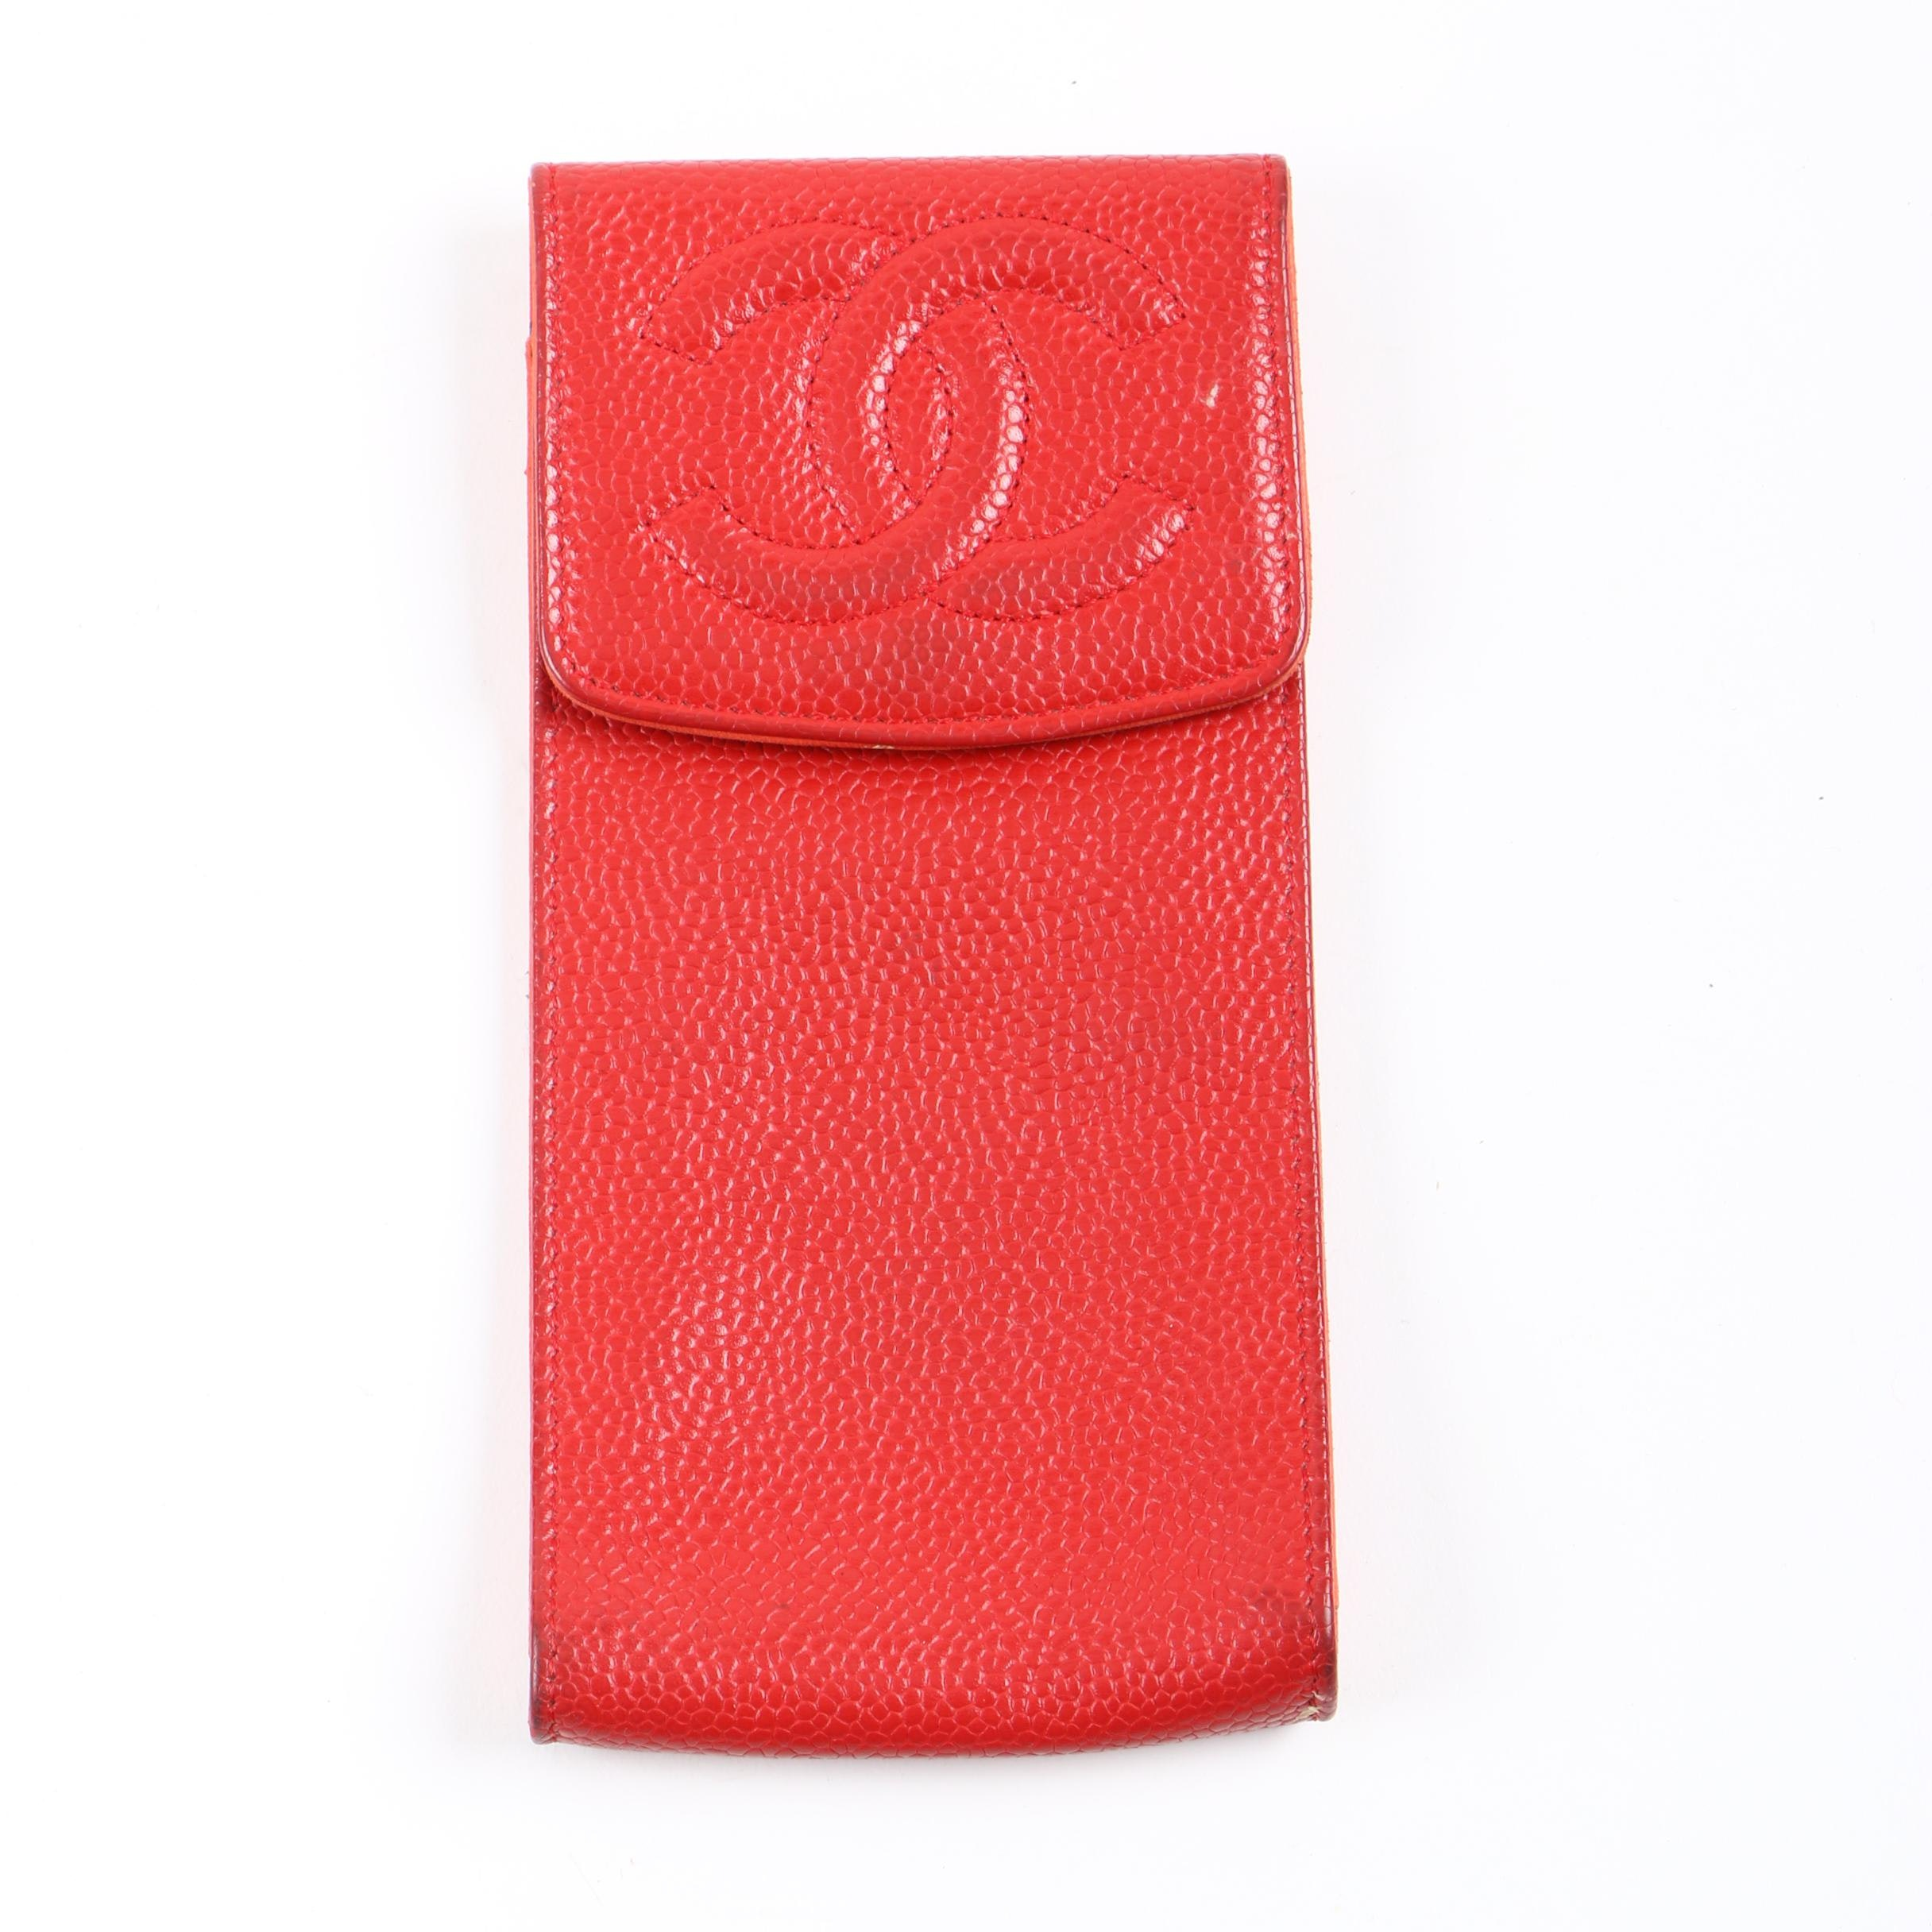 Chanel Red Caviar Leather Eyeglass Case